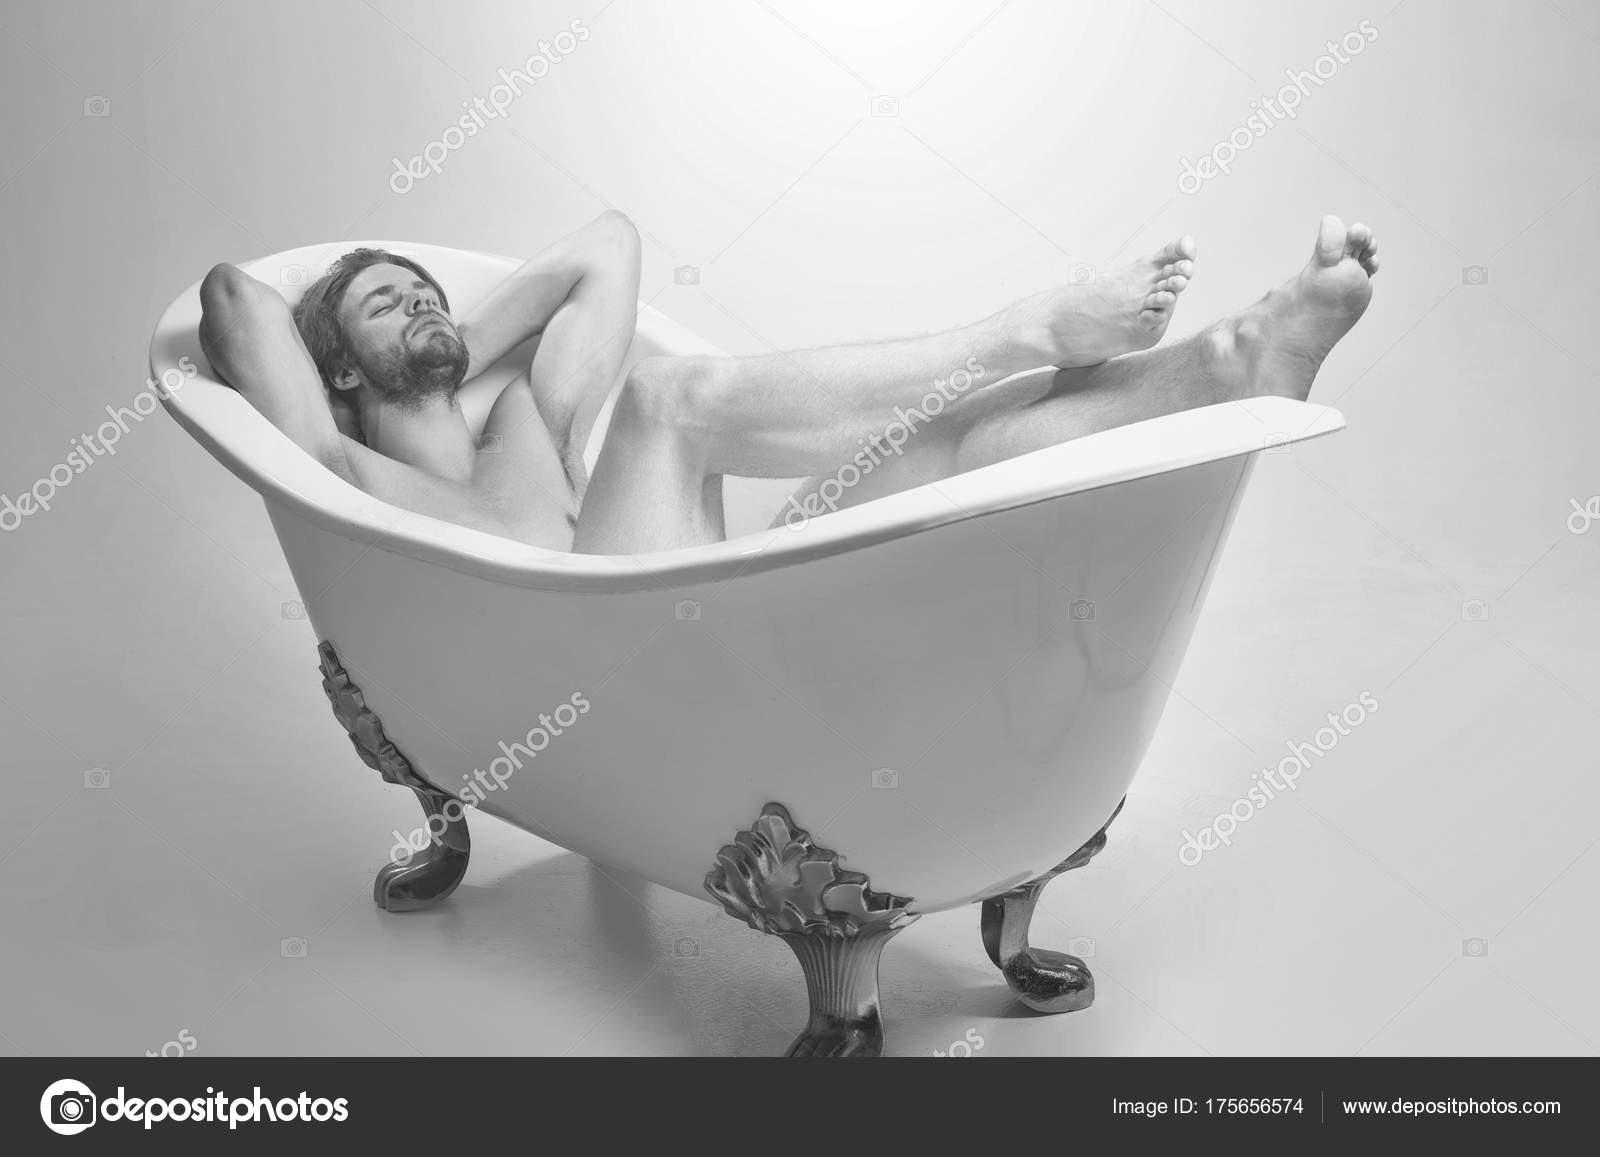 Bath in man naked tub